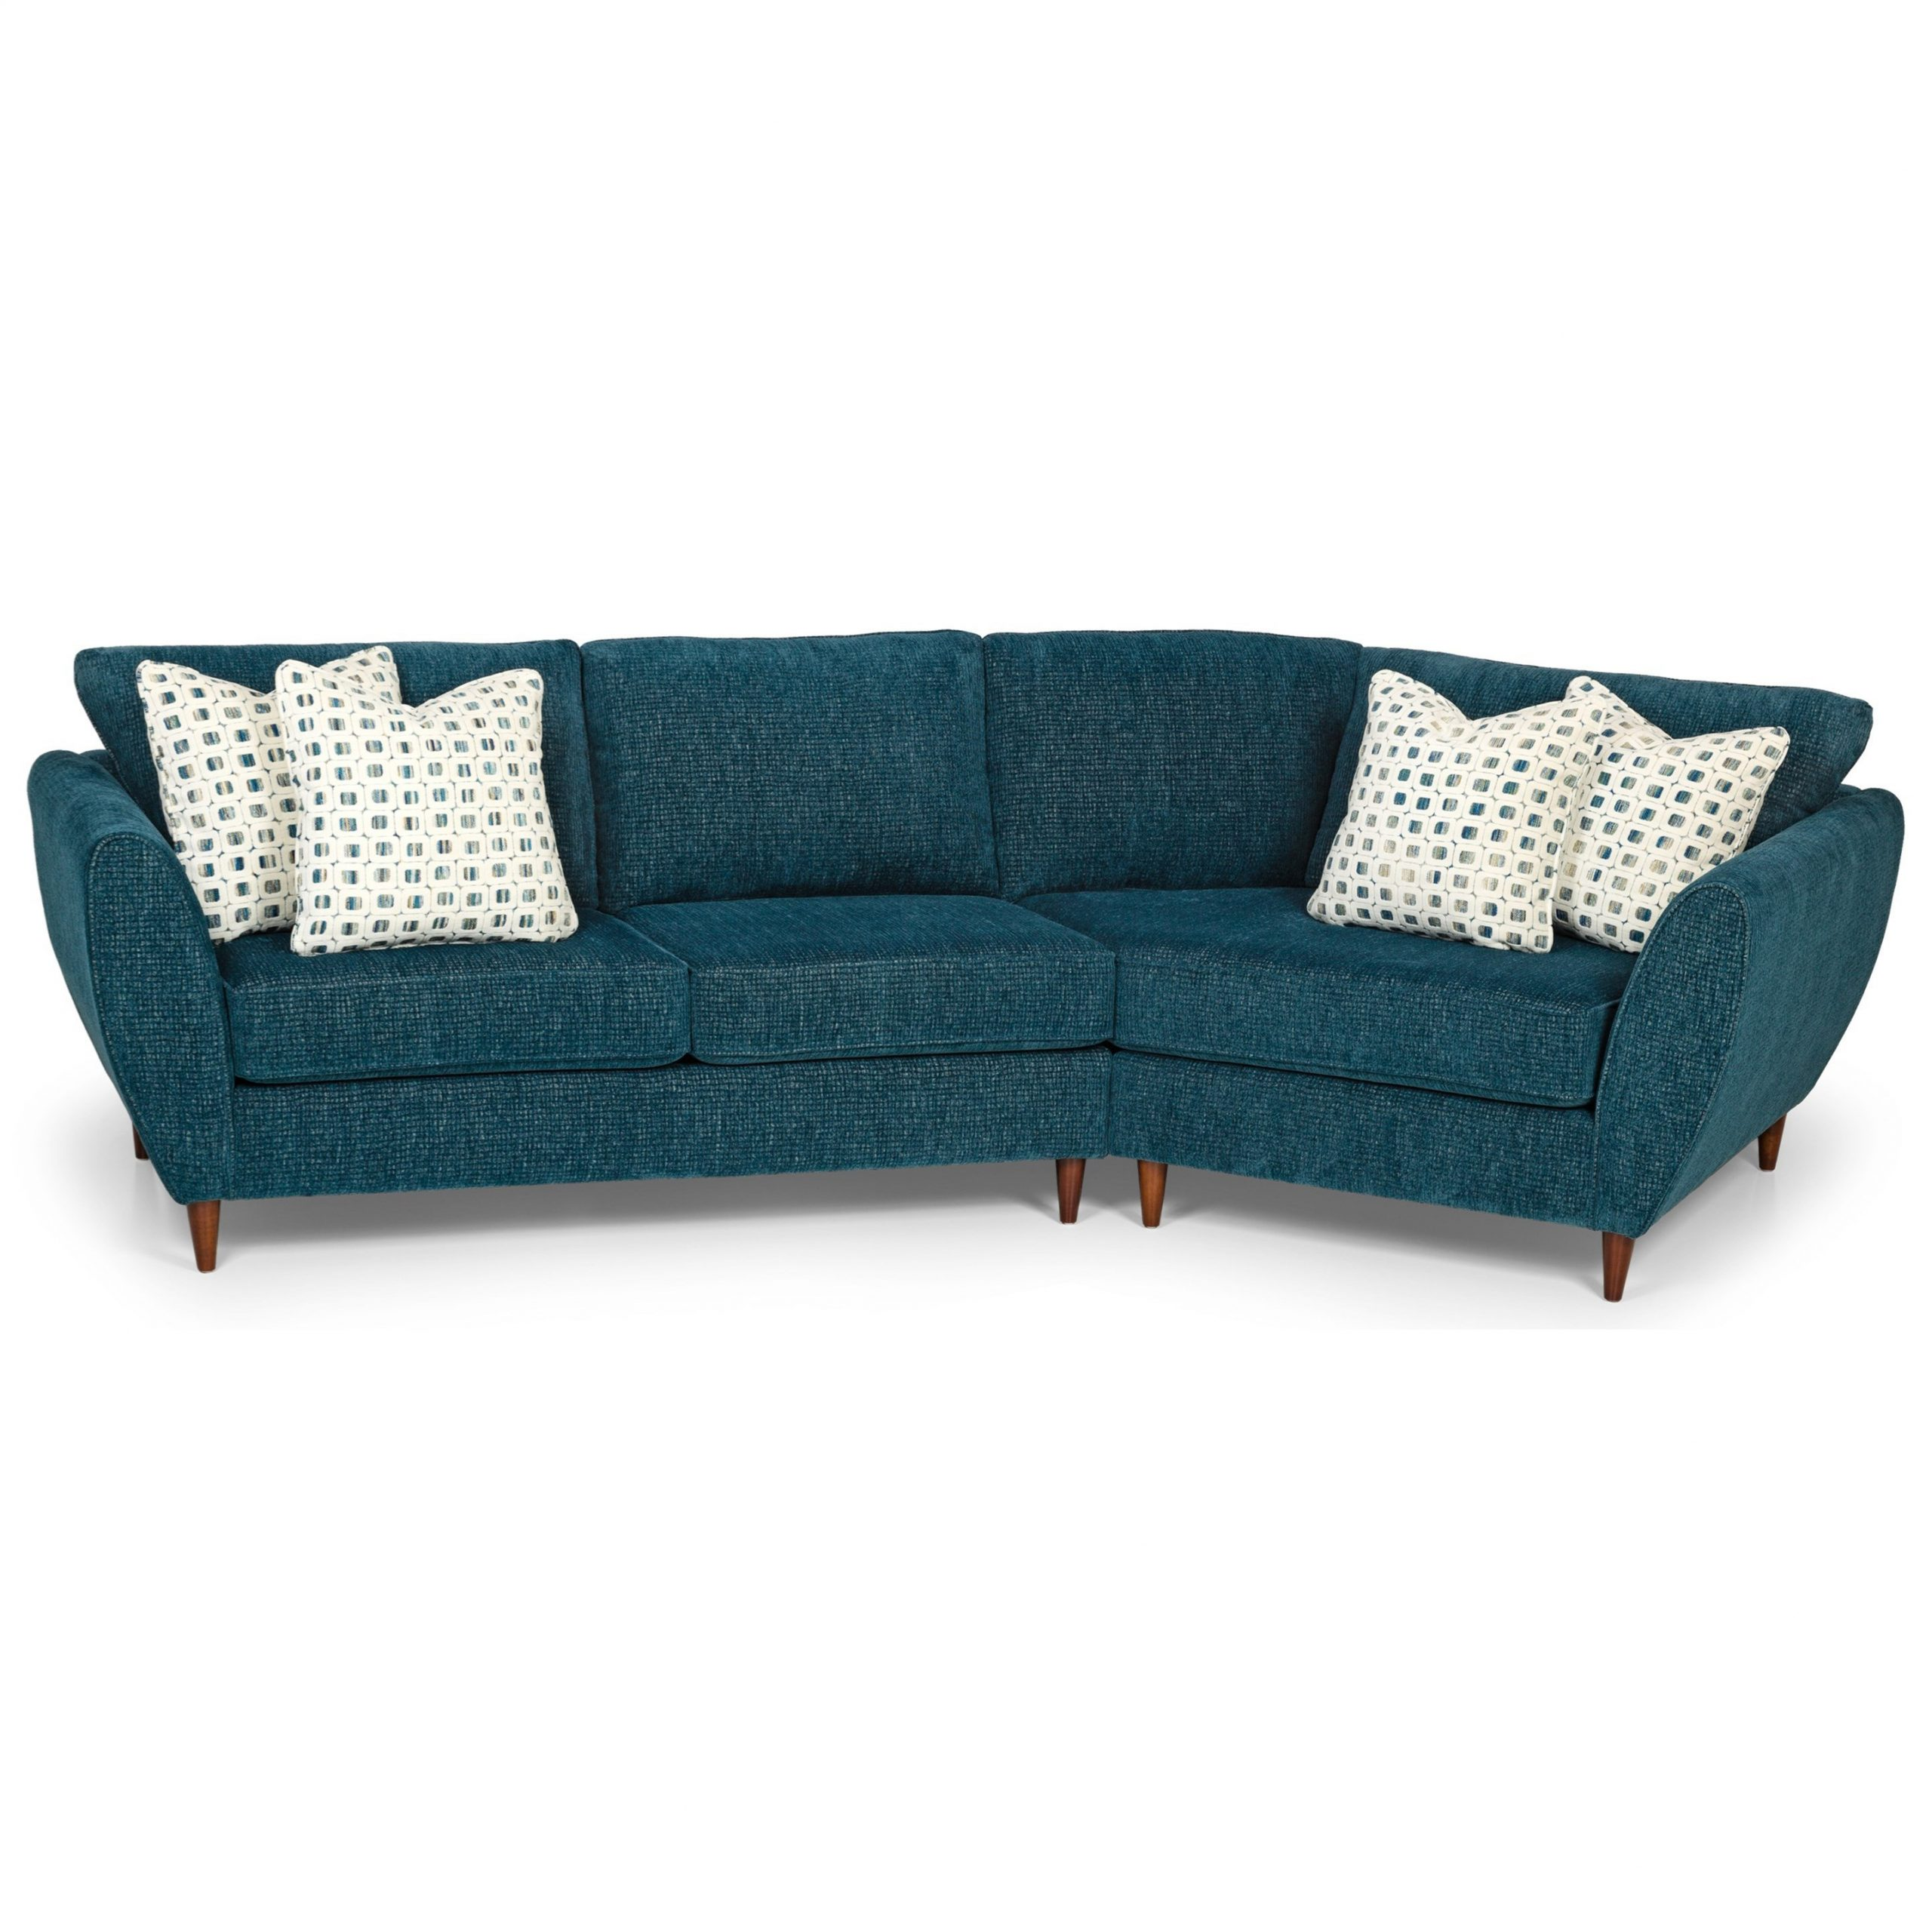 Florence Mid Century Modern Left Sectional Sofas Inside 2019 Stanton 473 Mid Century Modern 2 Piece Sectional Sofa With (View 2 of 20)